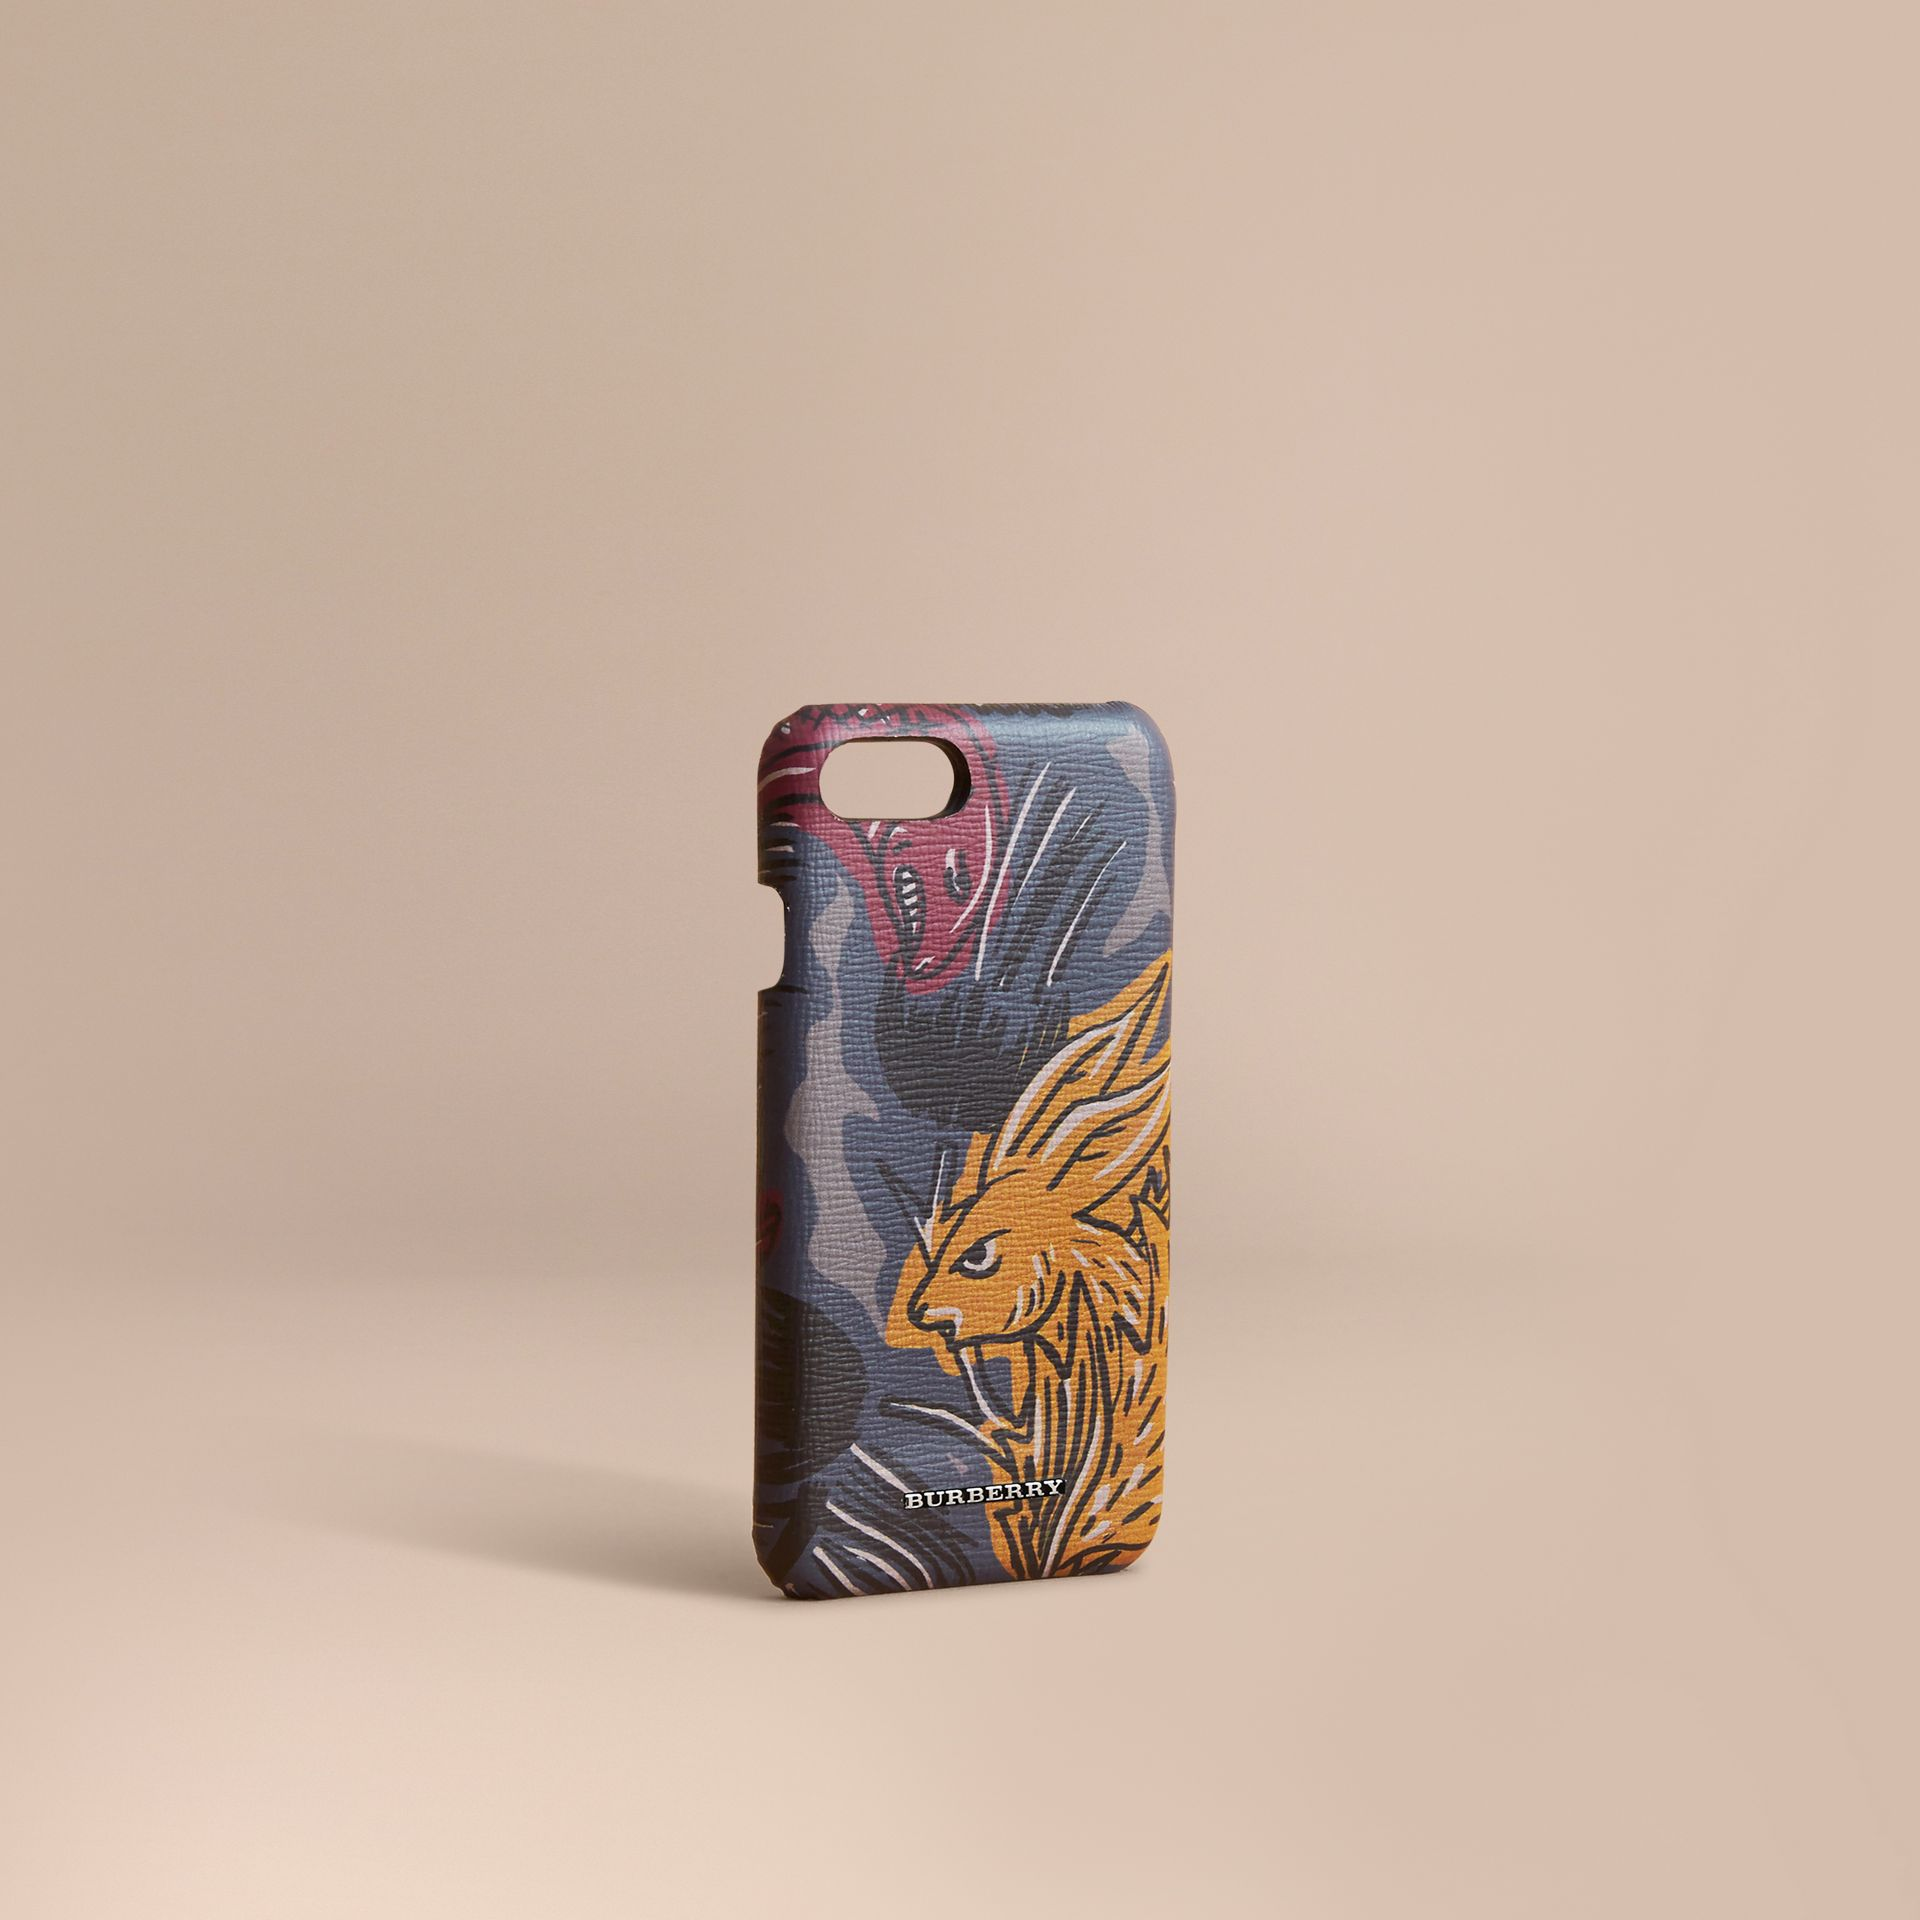 Beasts Print London Leather iPhone 7 Case in Navy Grey - Men | Burberry - gallery image 1